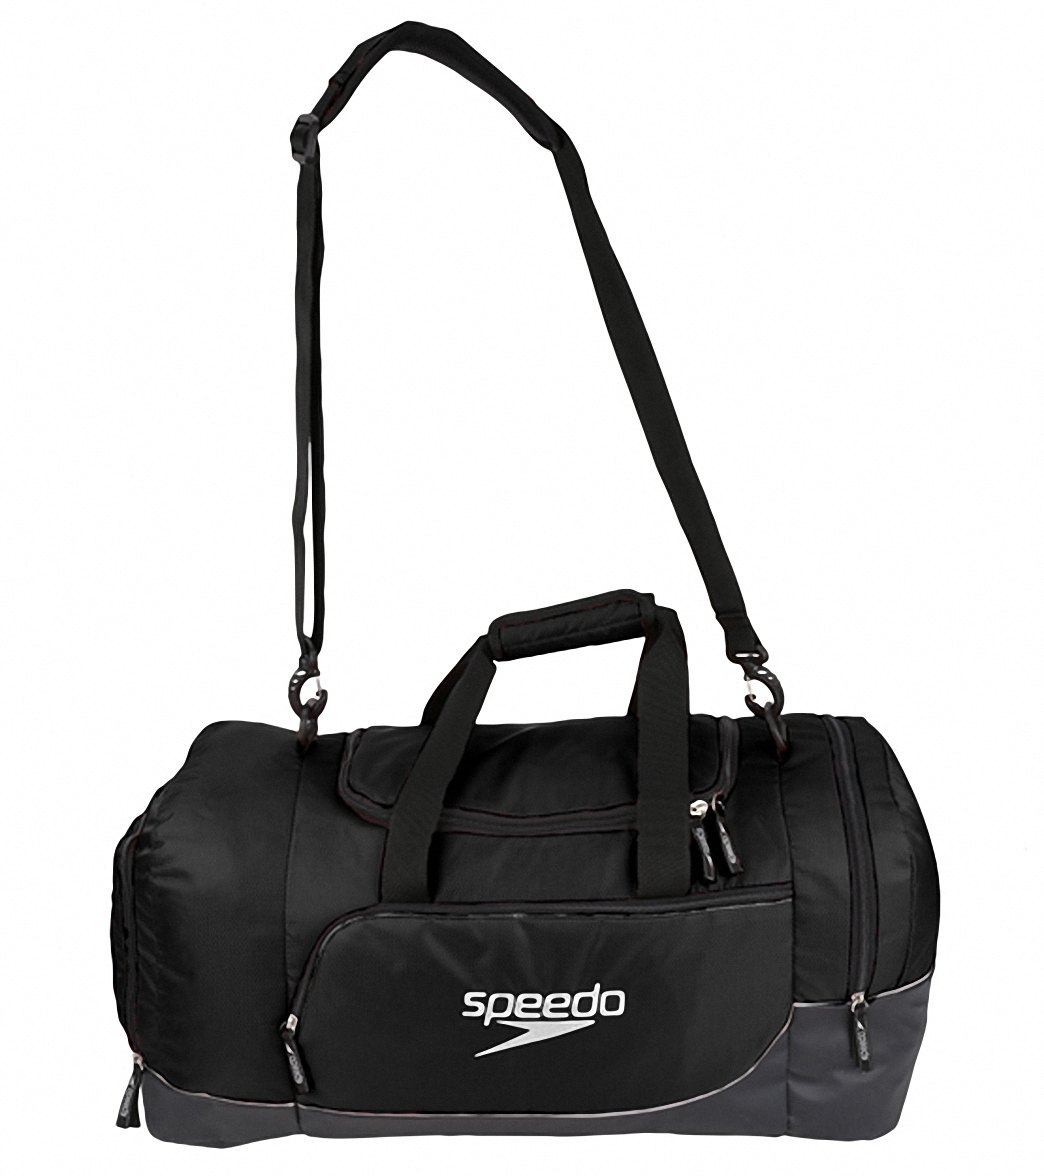 e78ca51445 Speedo Teamster Duffle at SwimOutlet.com - Free Shipping